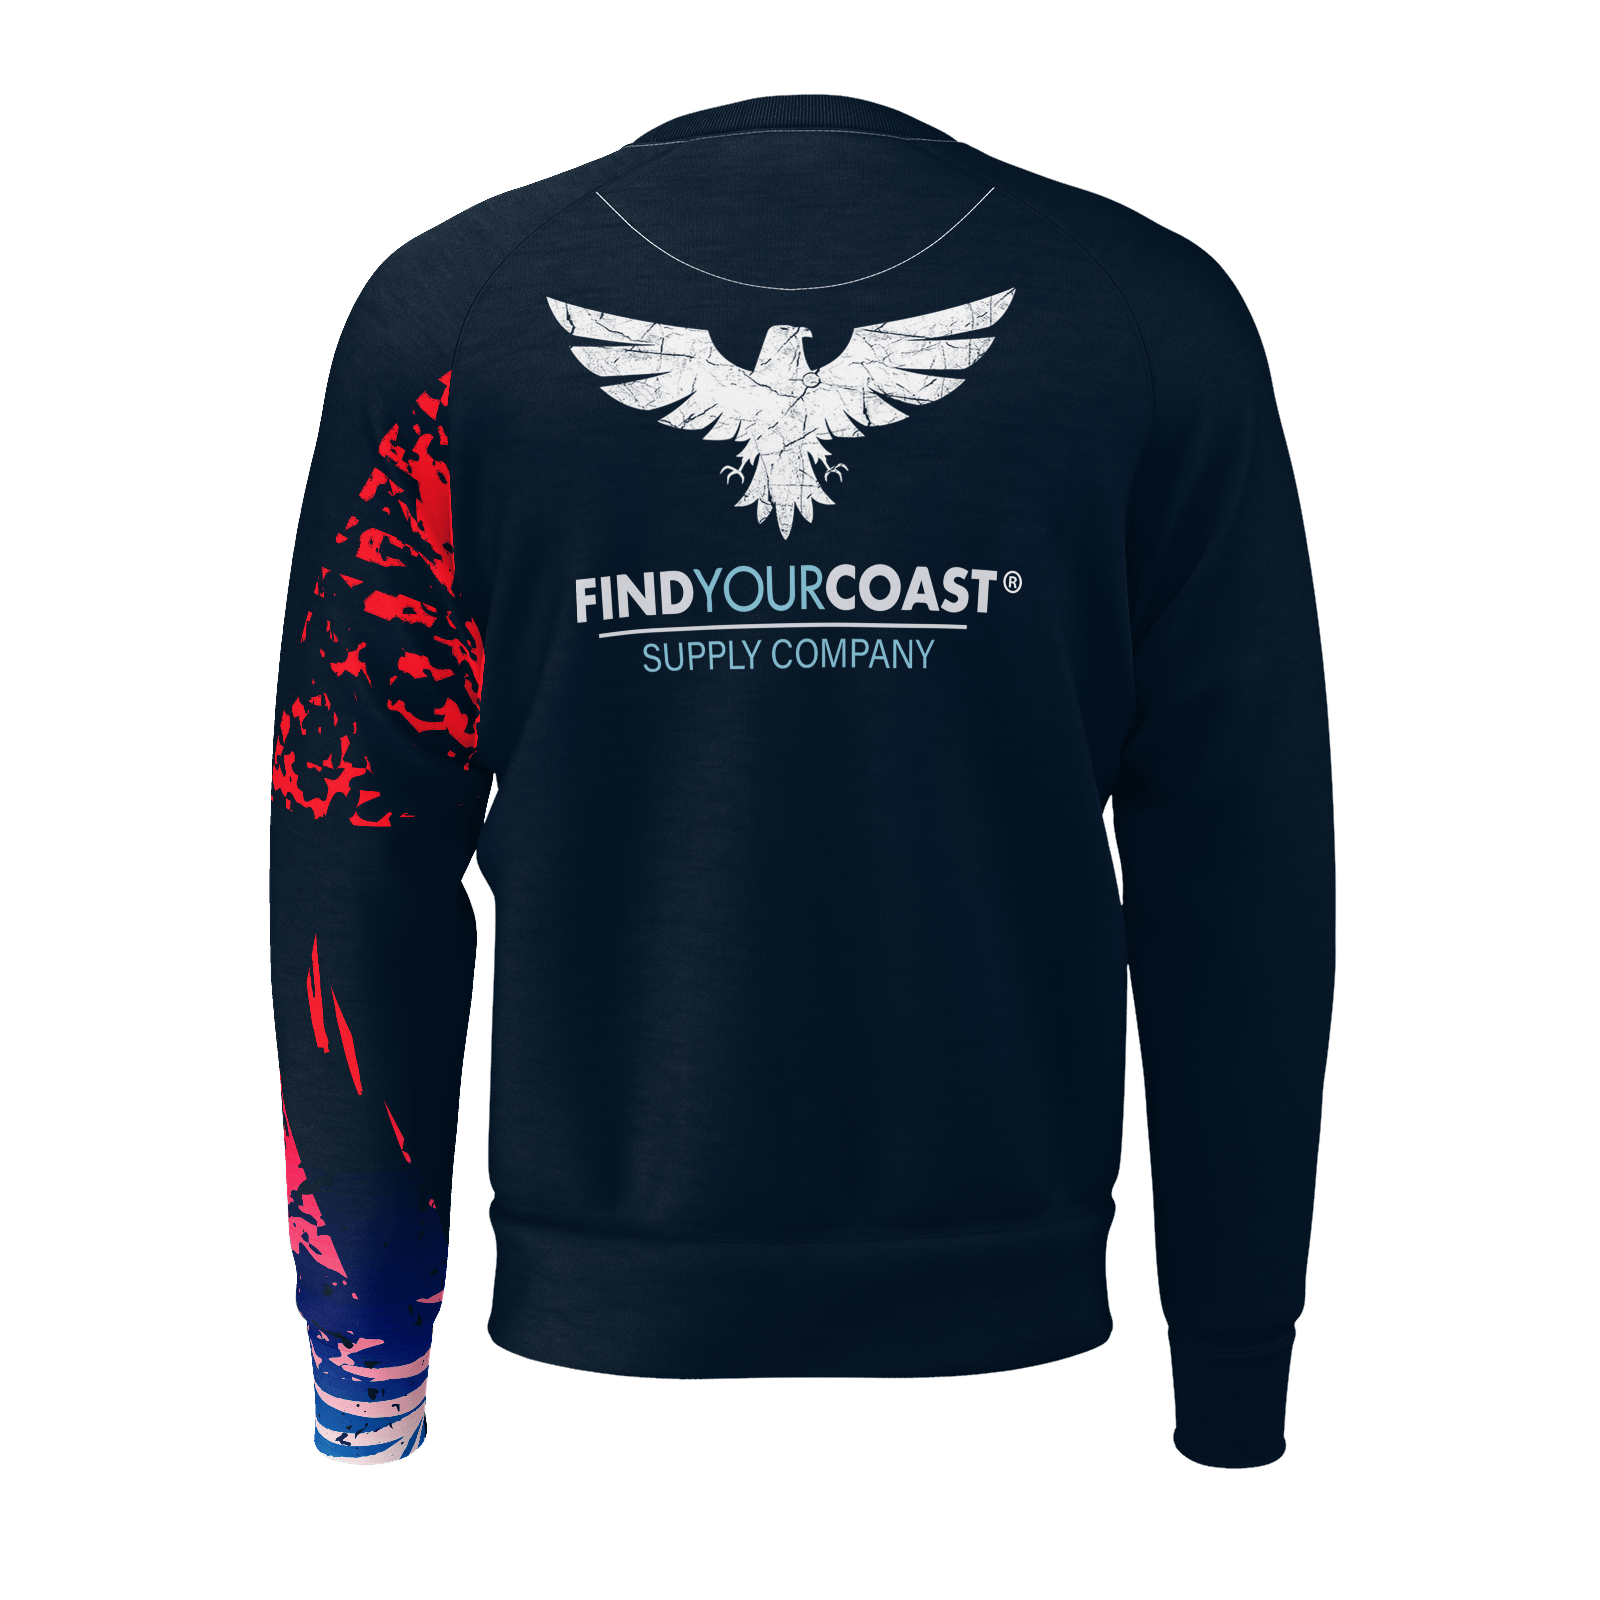 Men's Victory Sleeve Sustainable Navy Long Sleeve Raglan Sweatshirt - Find Your Coast Supply Co.